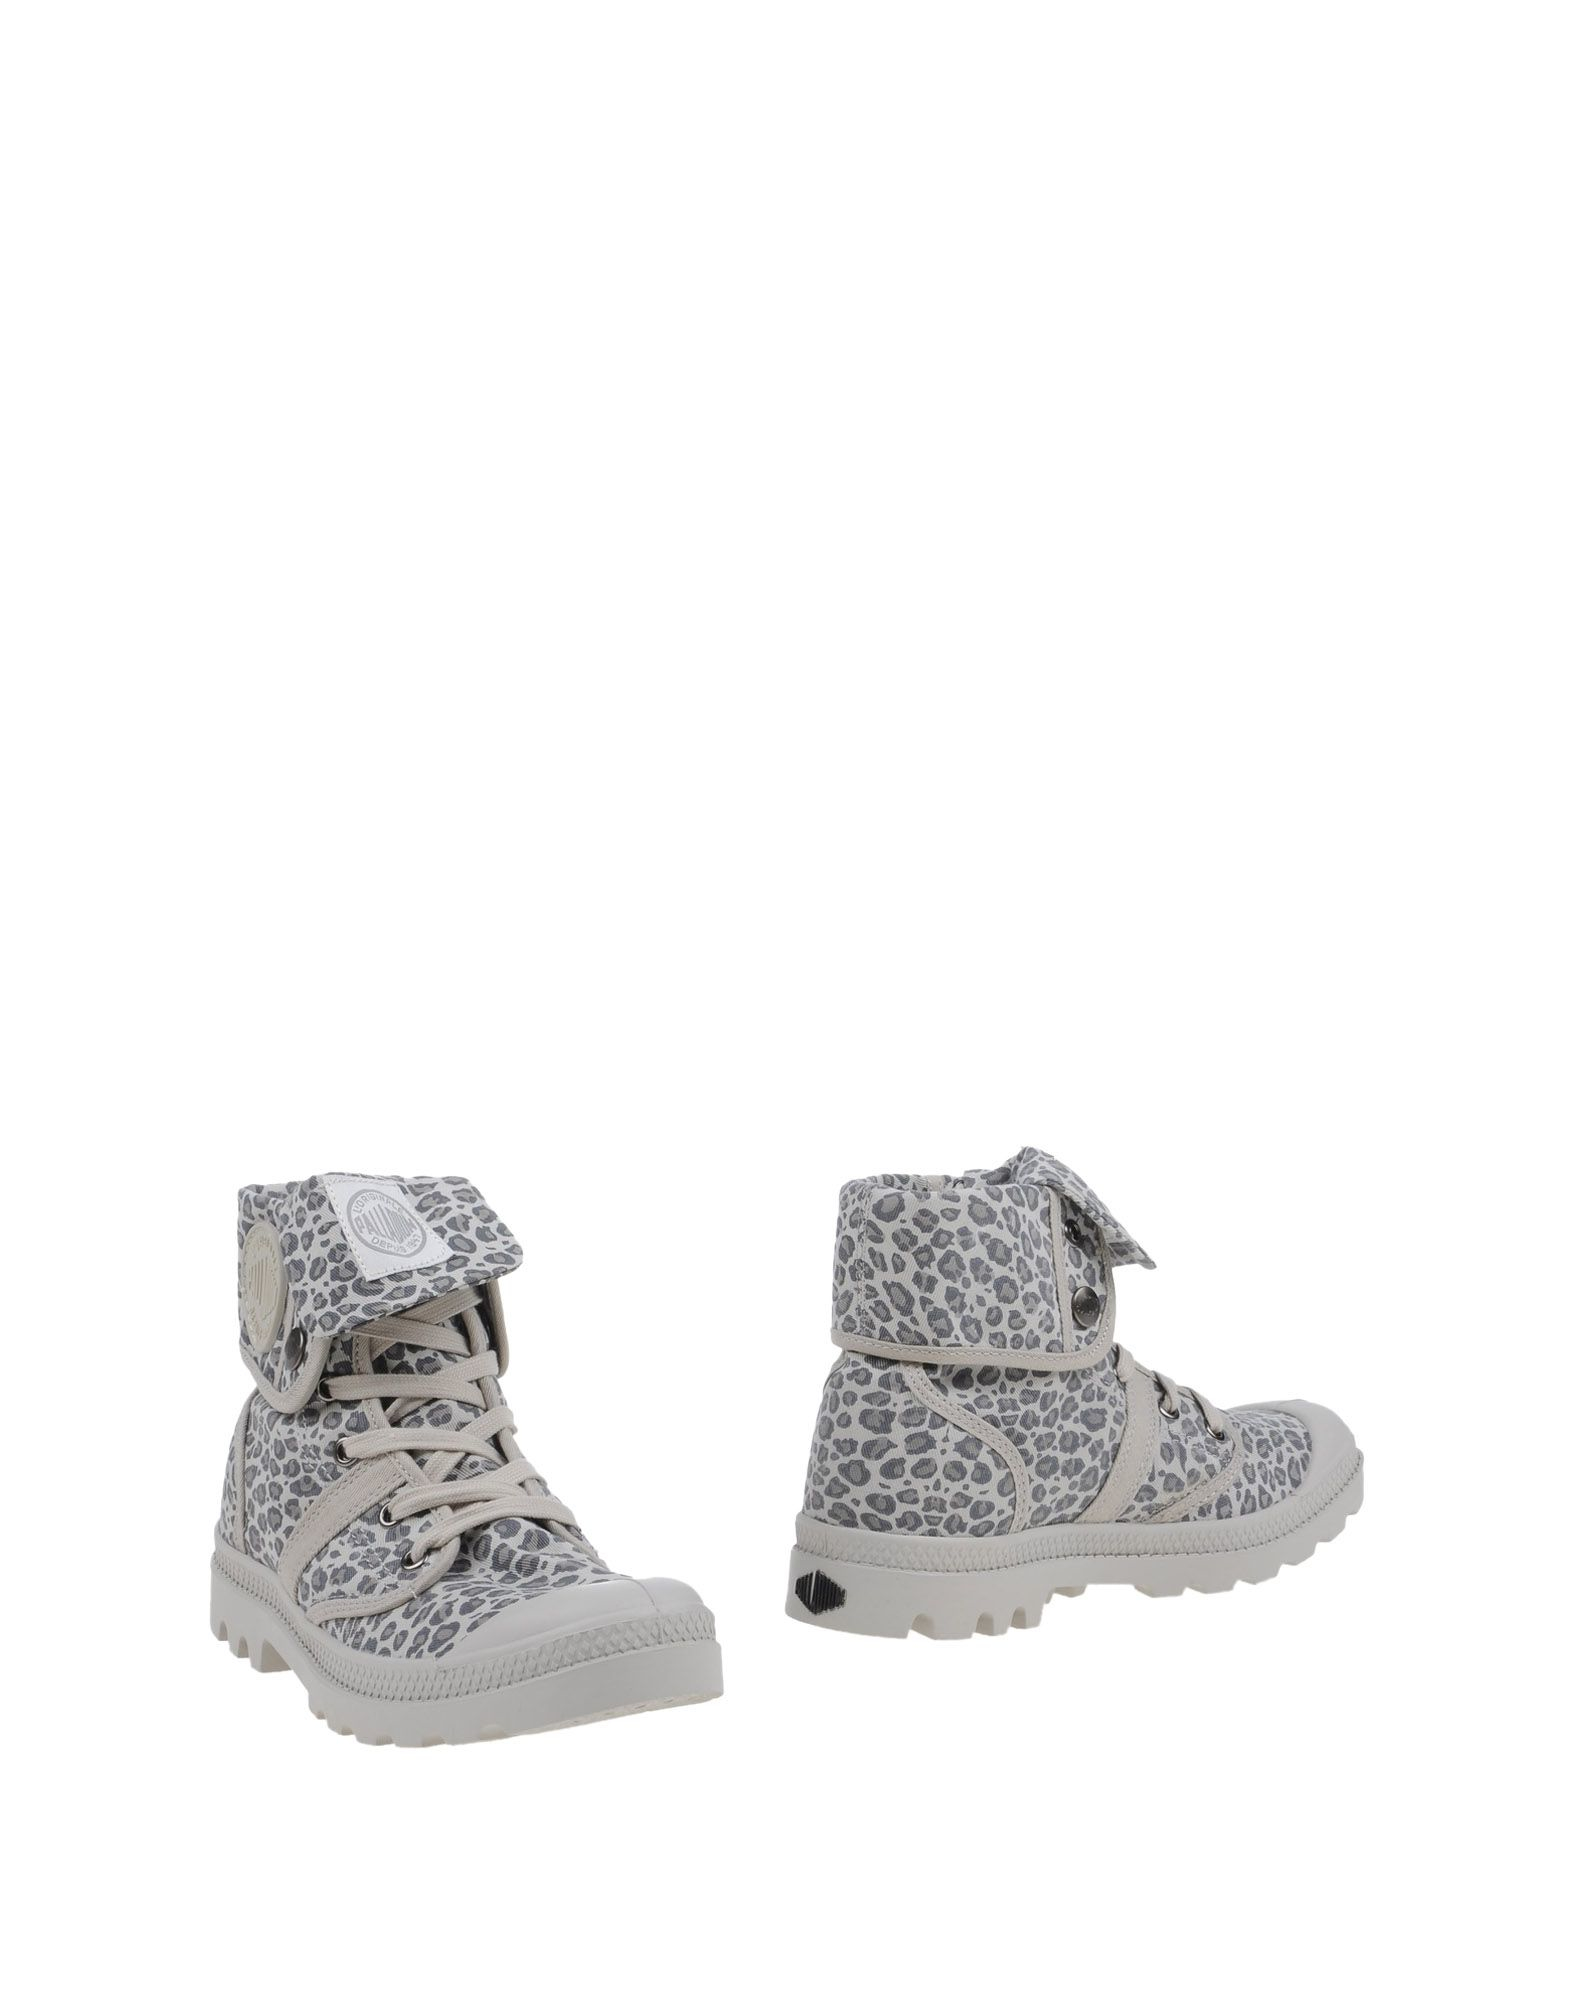 Awesome Grey Palladium Ankle Boots PALLABROUSE D Viewshop_detailaanzicht_2